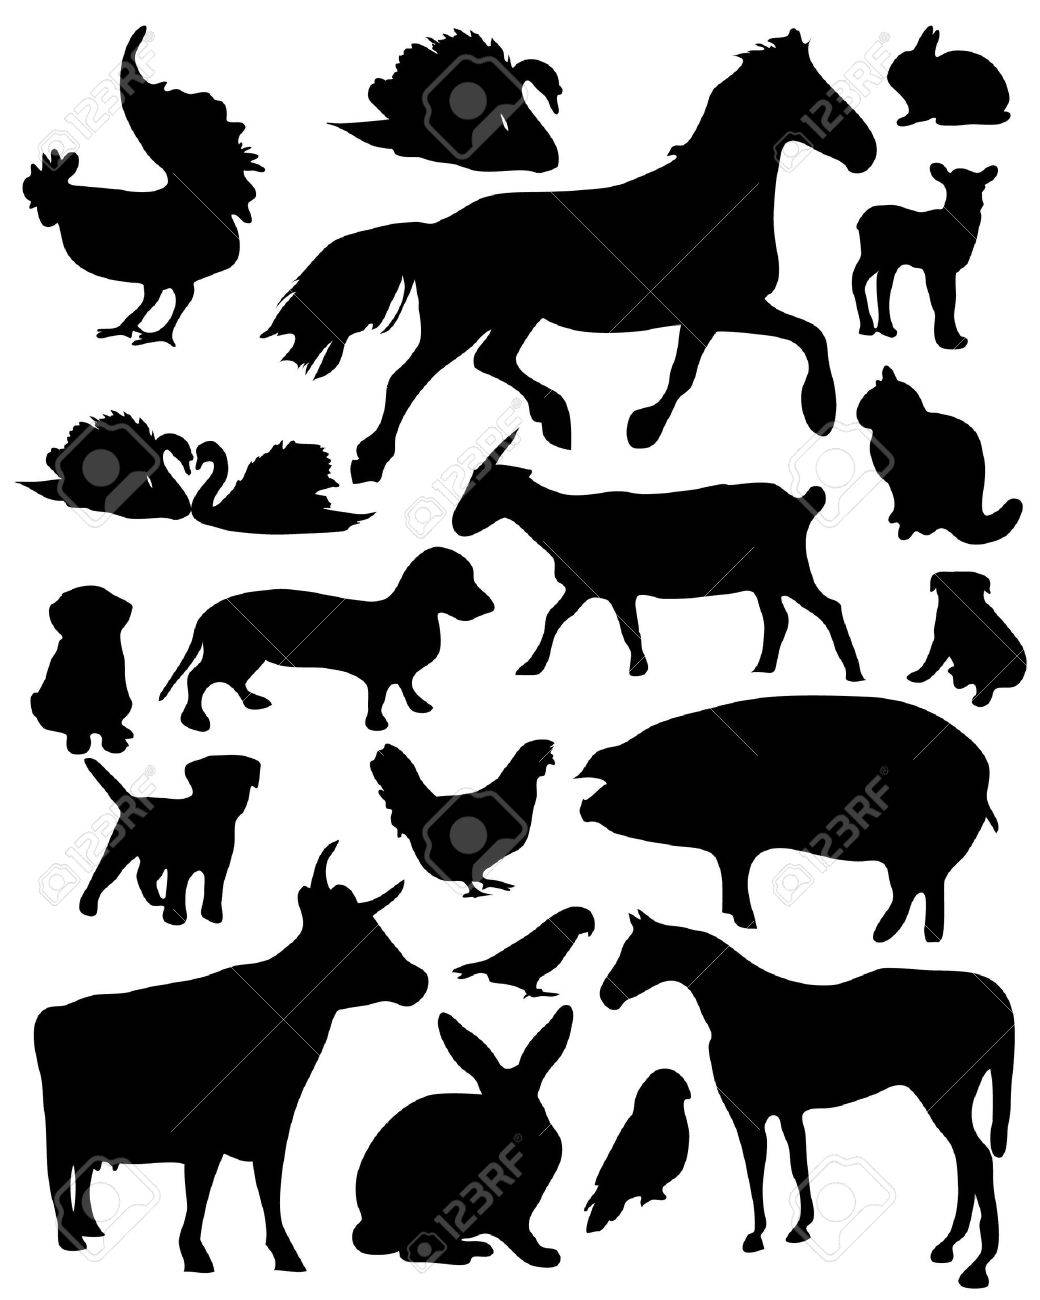 Set of vector illustrated domestic animals silhouettes Stock Vector - 6671067